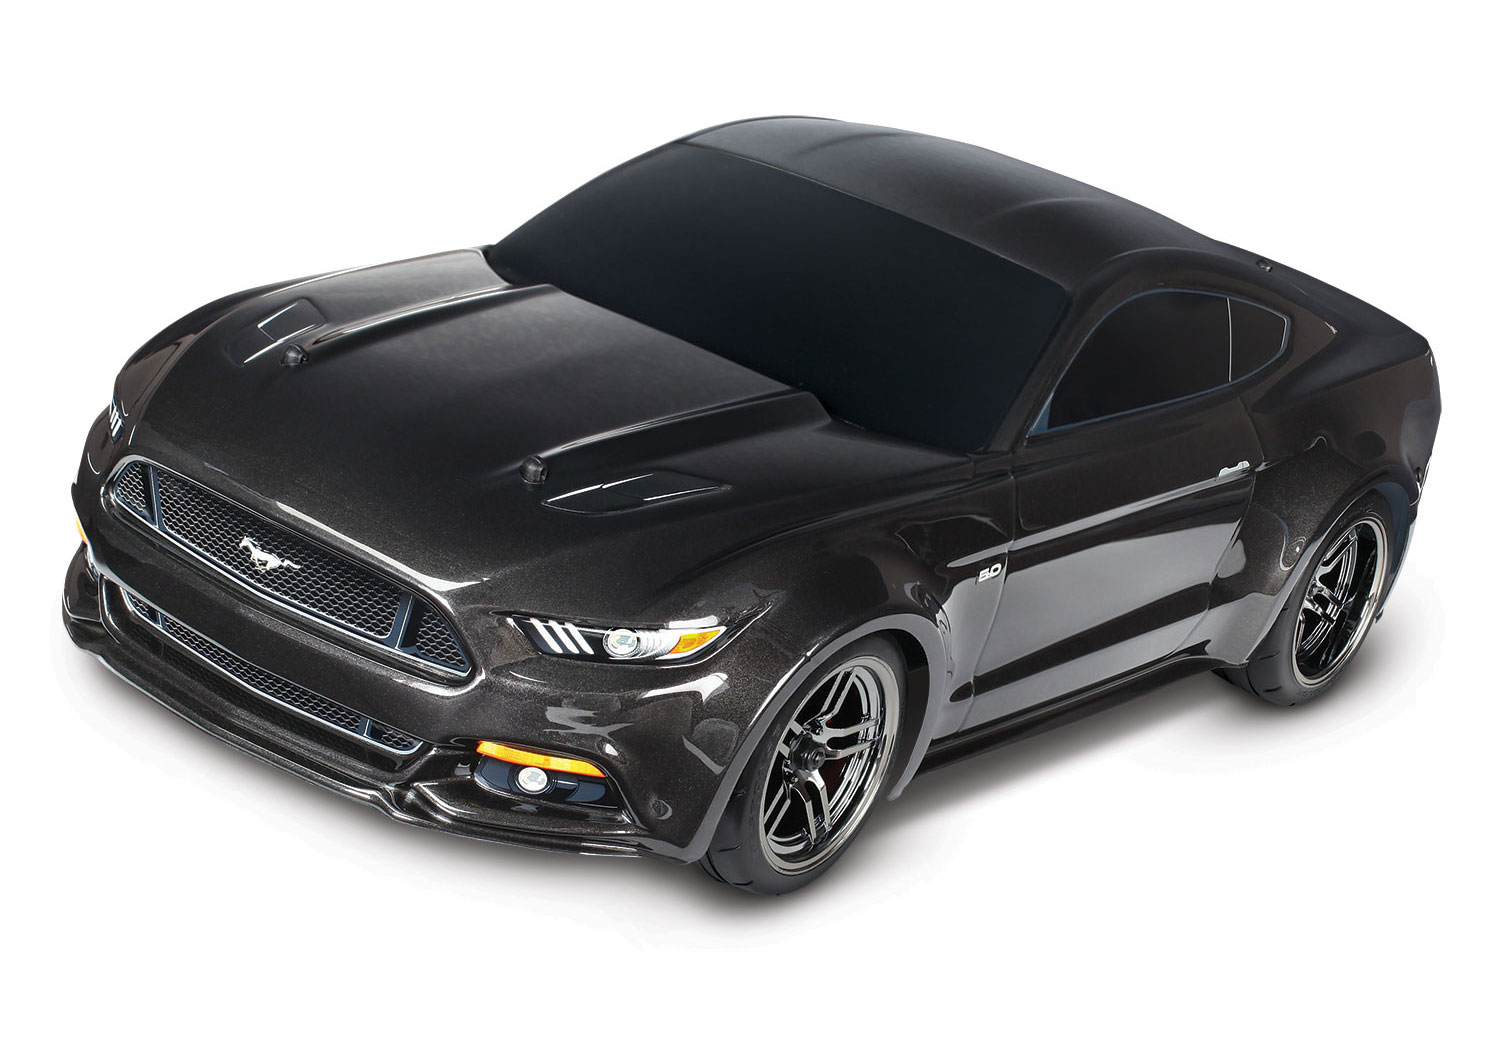 Rc Ford Mustang Gt By Traxxas 1 10 Scale Choice Gear